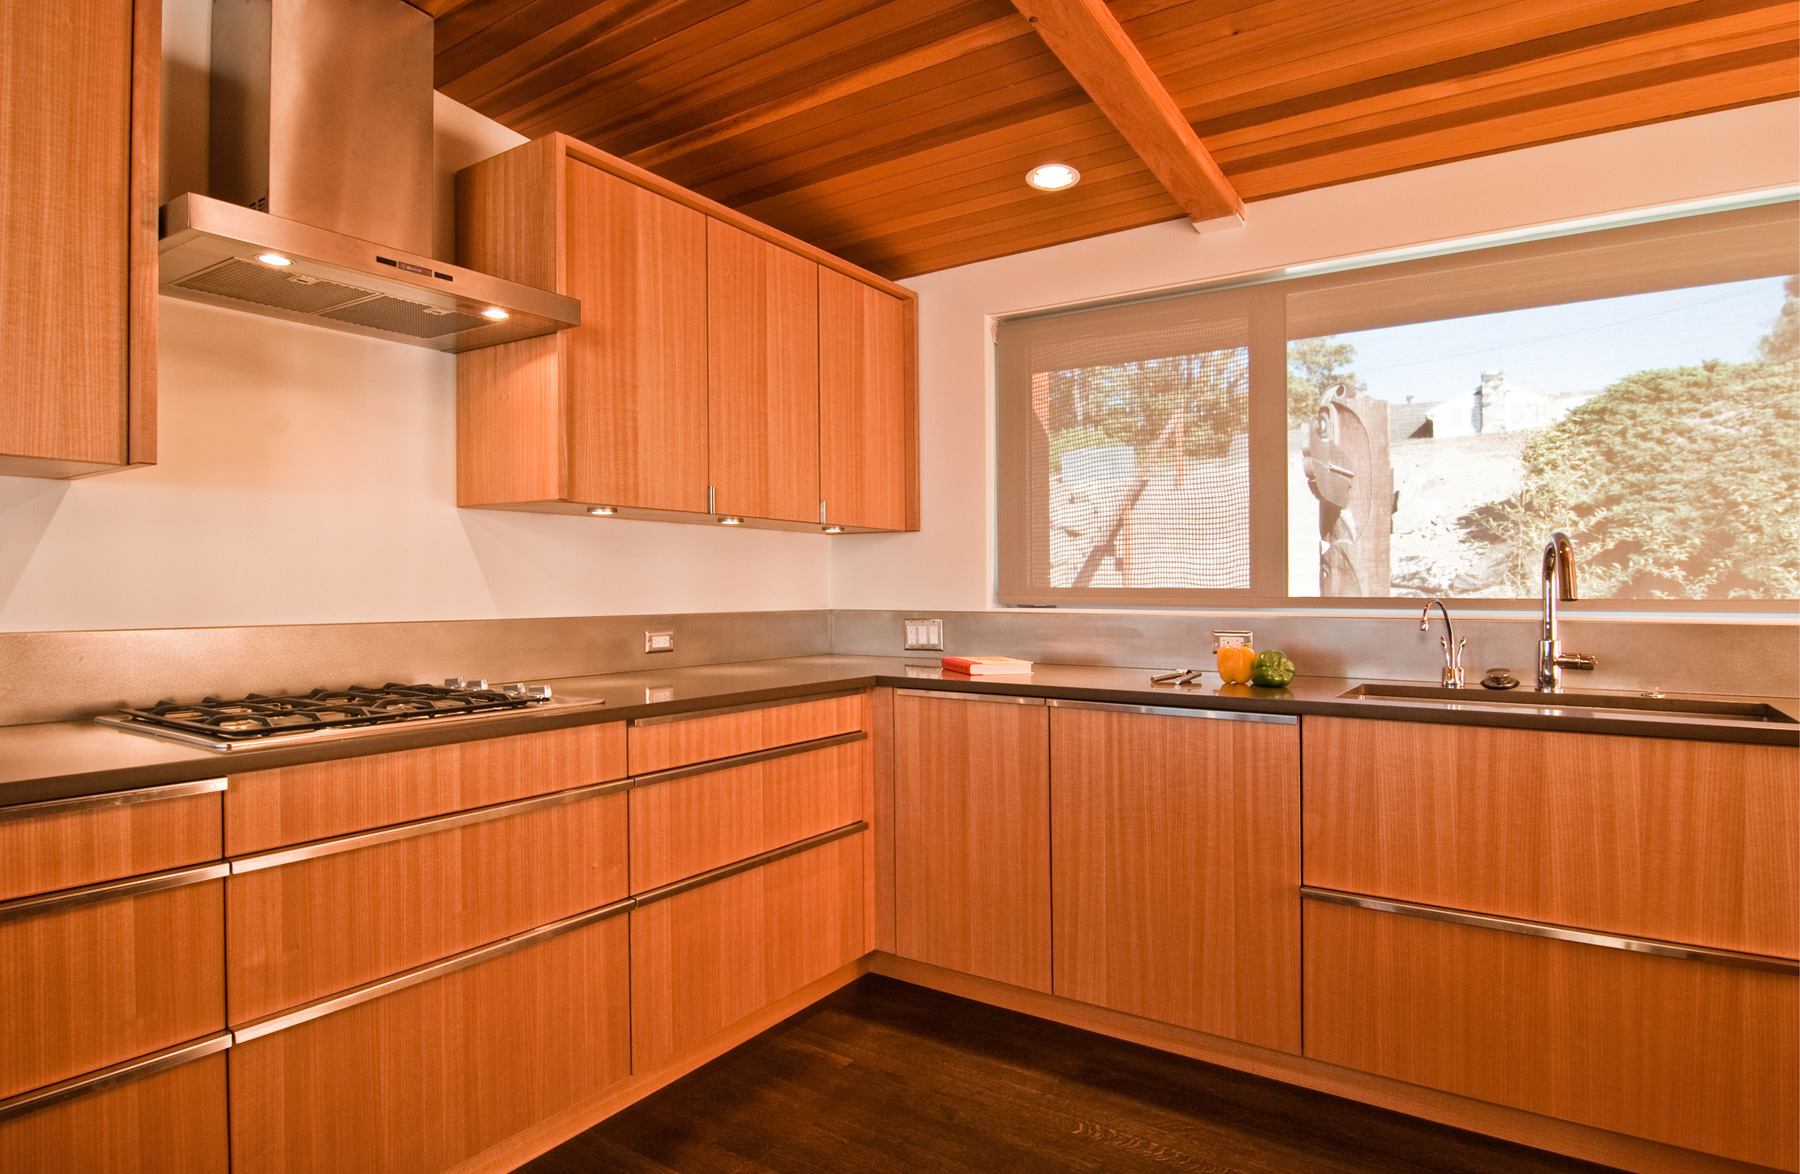 simple mid century modern cabinets with minimalist metal handles sink and faucet a gas stove